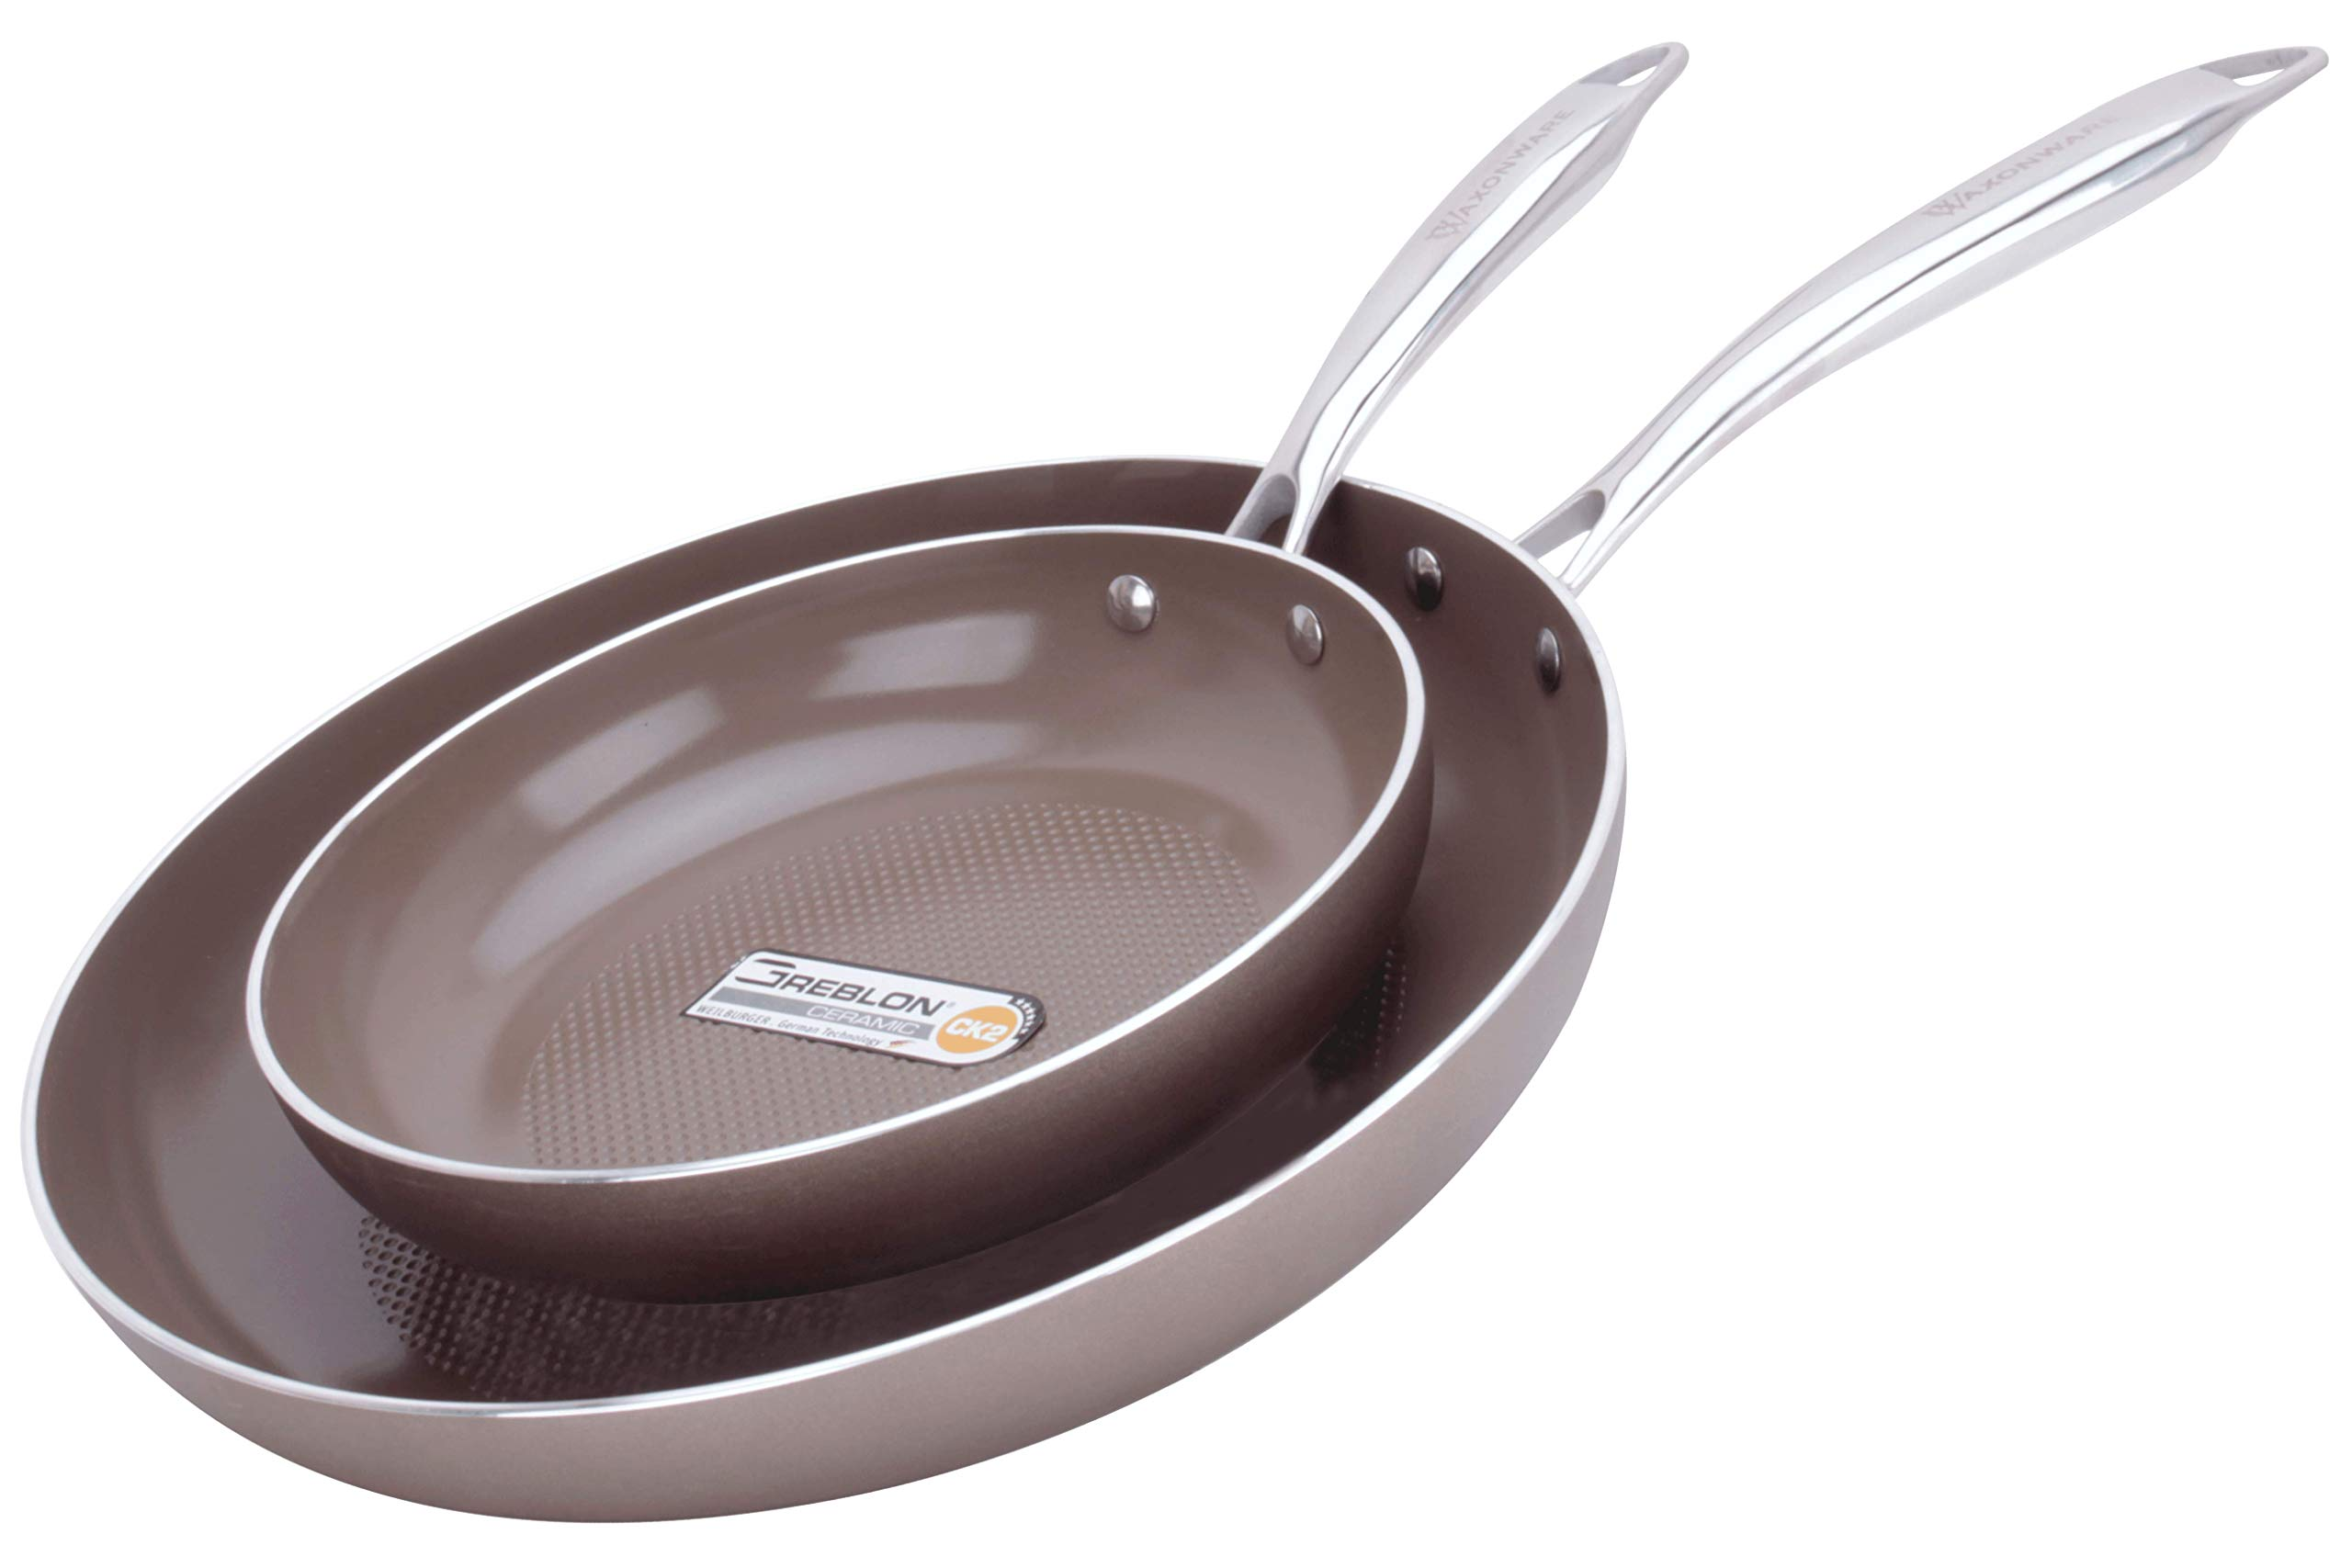 WaxonWare 8.5 & 12 Inch Ceramic Nonstick Frying Pans, Non Toxic PTFE APEO PFOA Free Nonstick Skillets, Induction Compatible, Dishwasher & Oven Safe Omelette Fry Pan With German Coating (HIVE Series) by WaxonWare